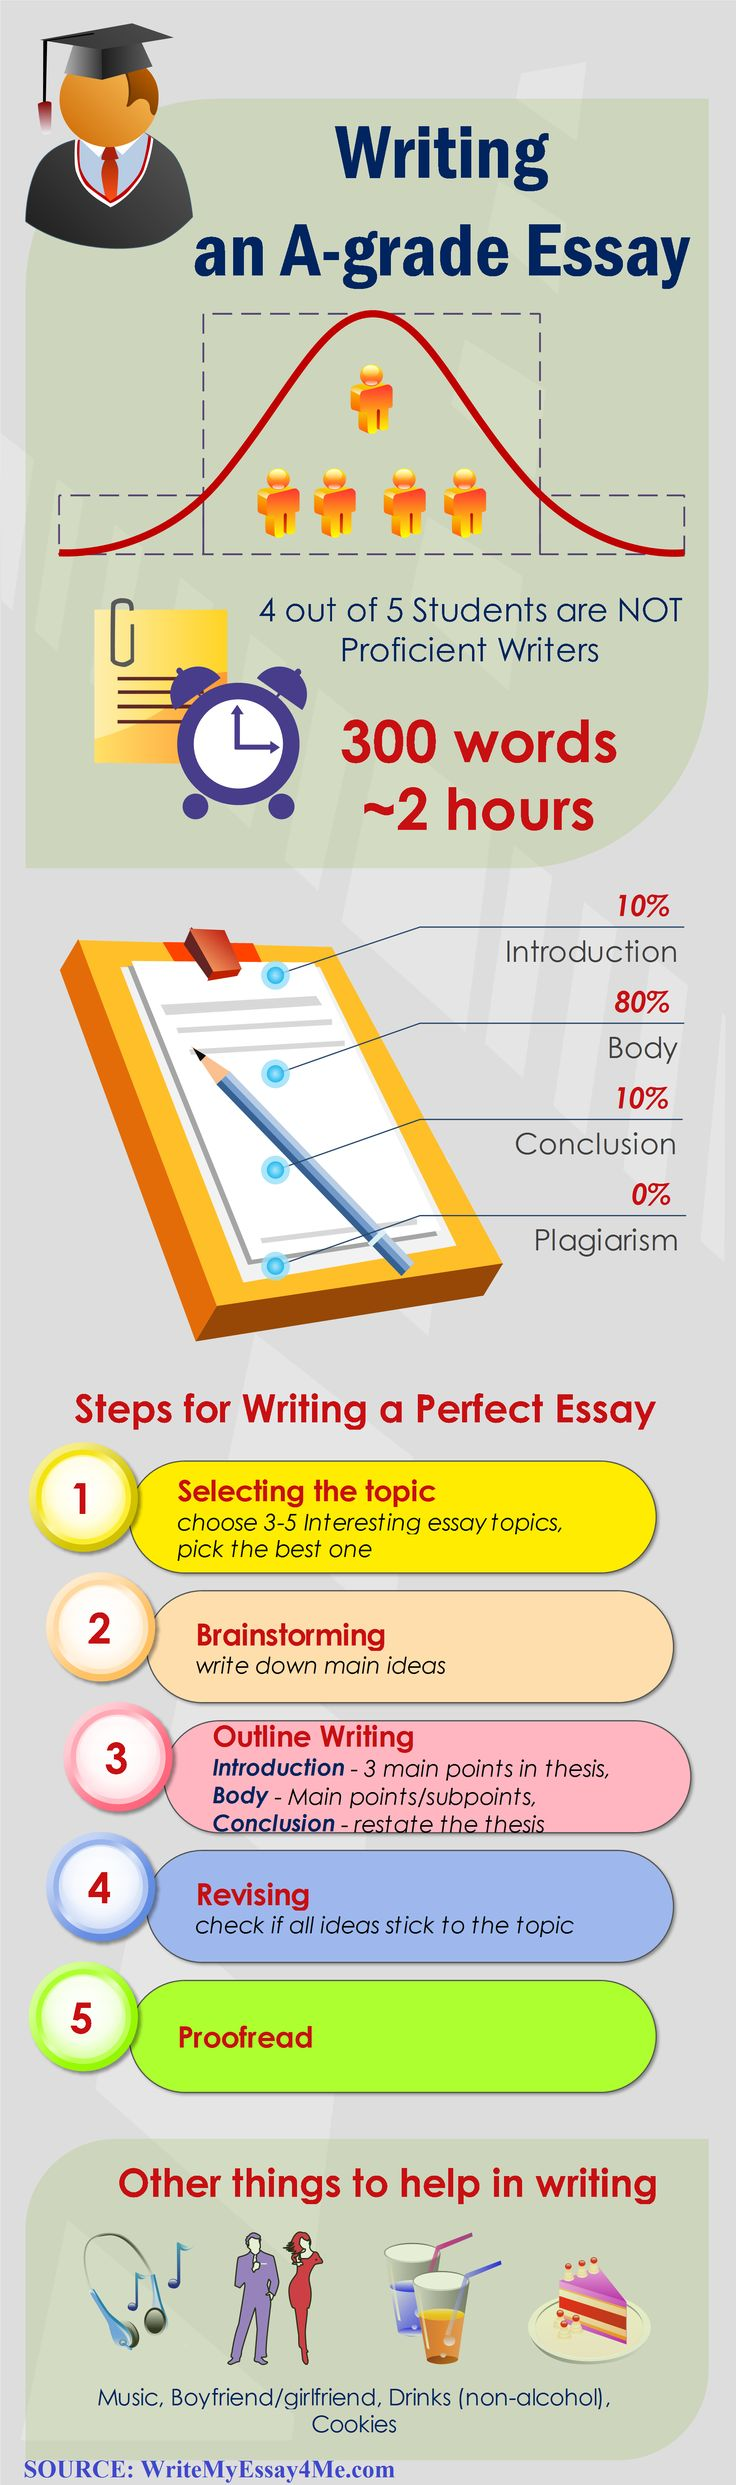 Essay On Good Health Essay Promptessay Starter Is An Ipad Application Designed For Writers  Students And Professionals English 101 Essay also How To Write A College Essay Paper Best  Essay Writing Tips Ideas On Pinterest  Better Synonym  Essays About Science